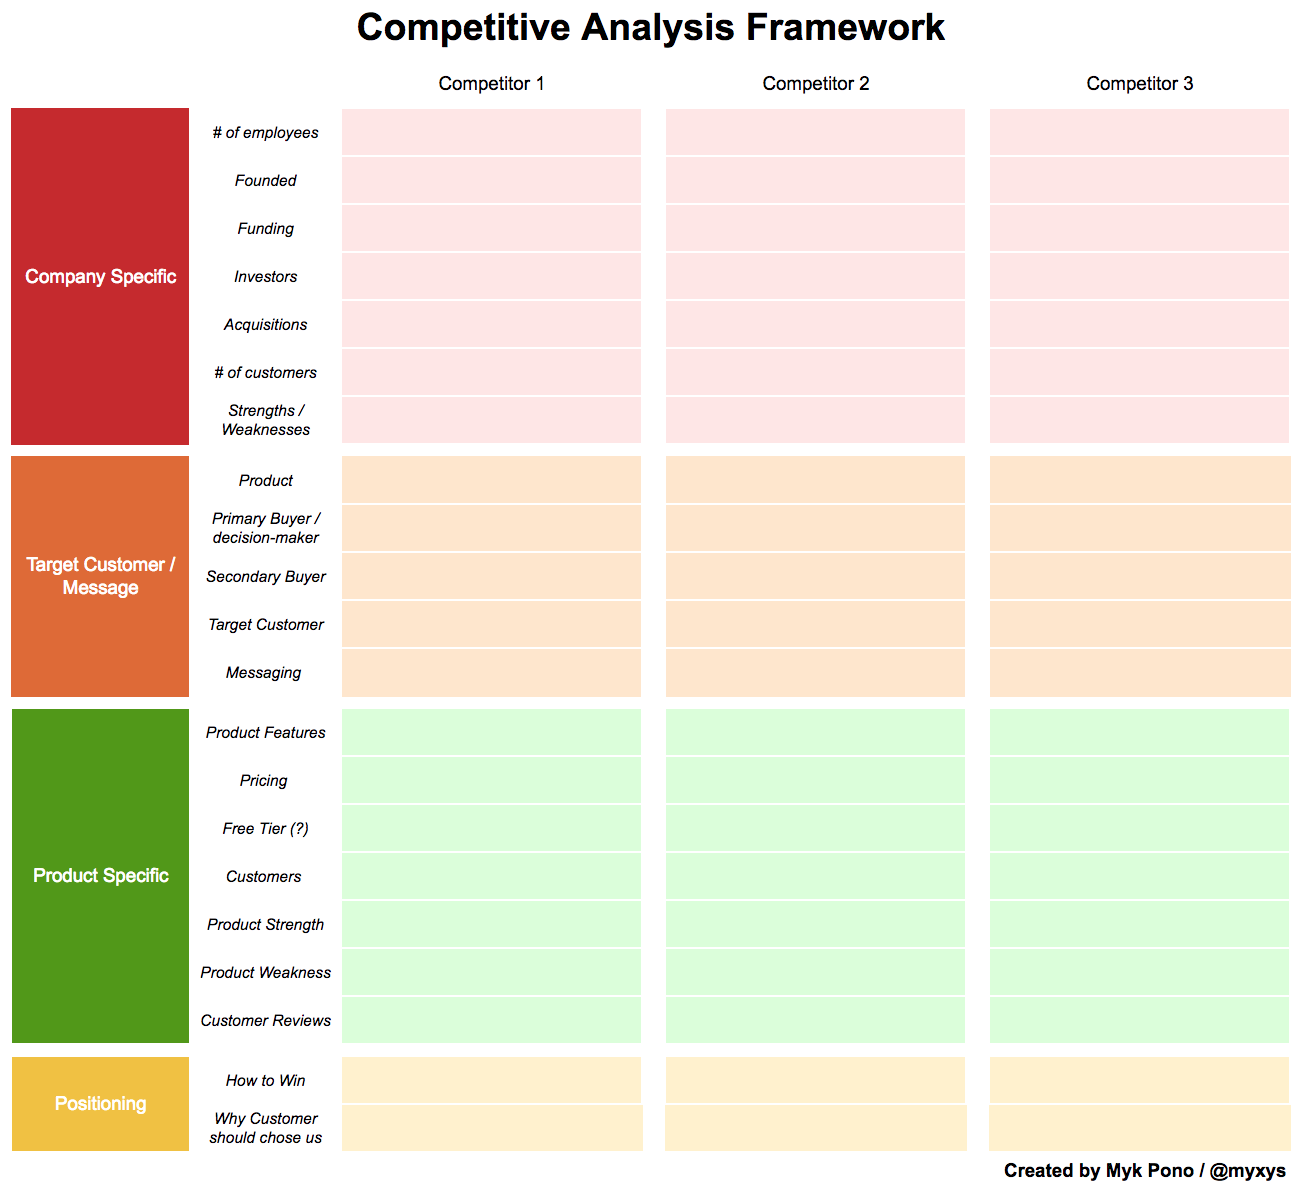 Ace your Competitive Analysis